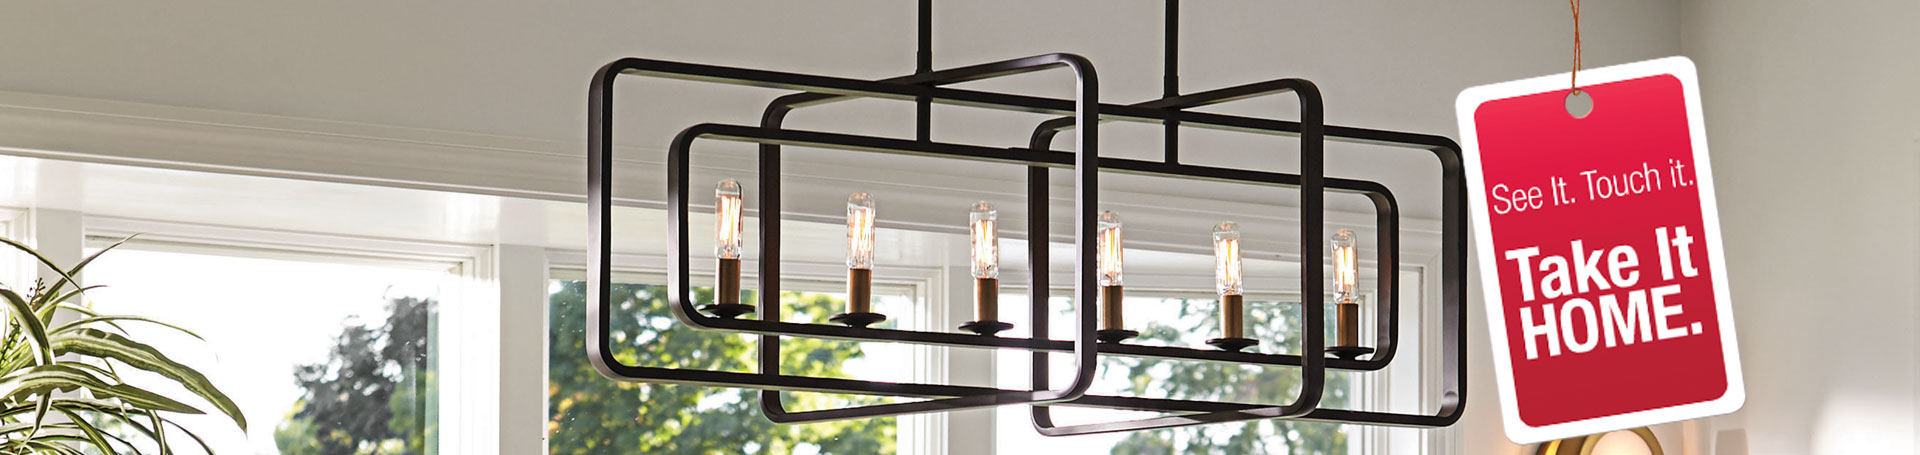 Masterpiece lighting is no exception our lighting customers are continually tempted to visit internet retailer websites where they